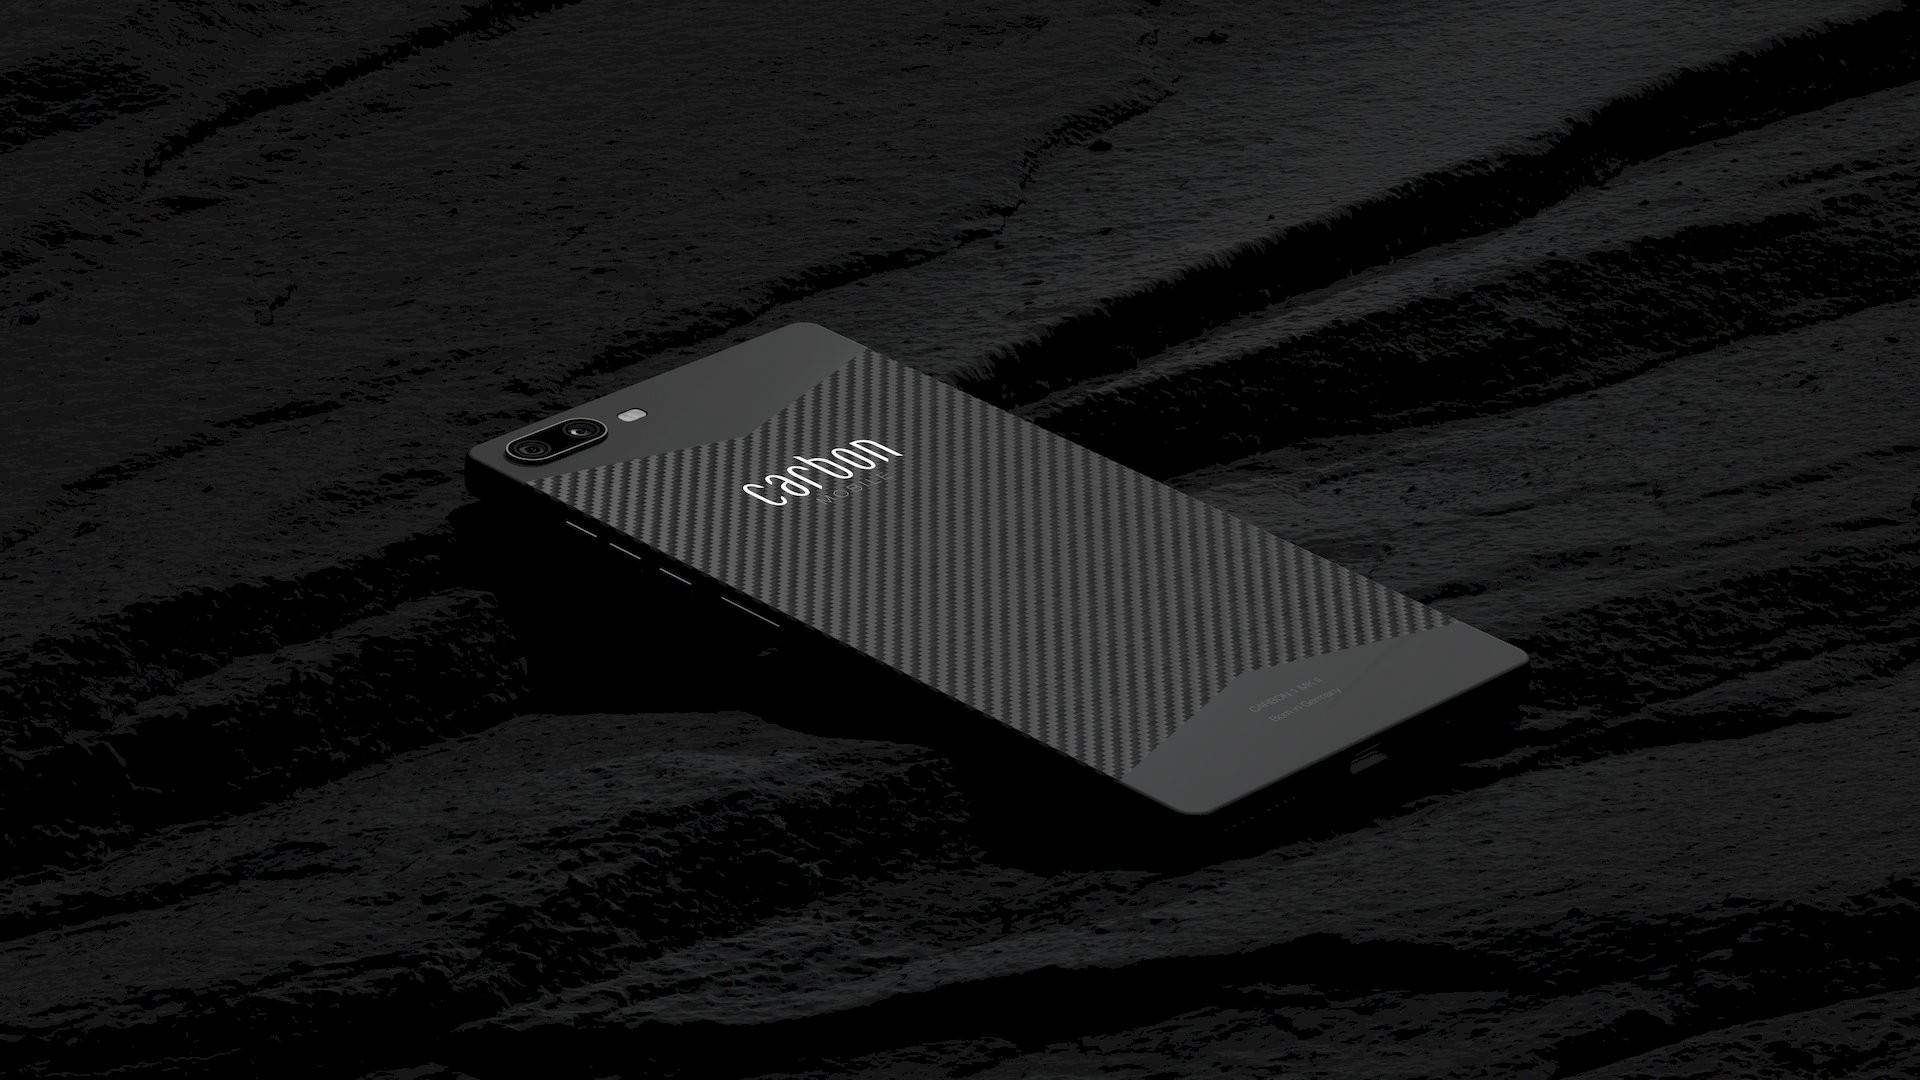 Carbon 1 MK II is first phone in the world with a carbon fiber monocoque